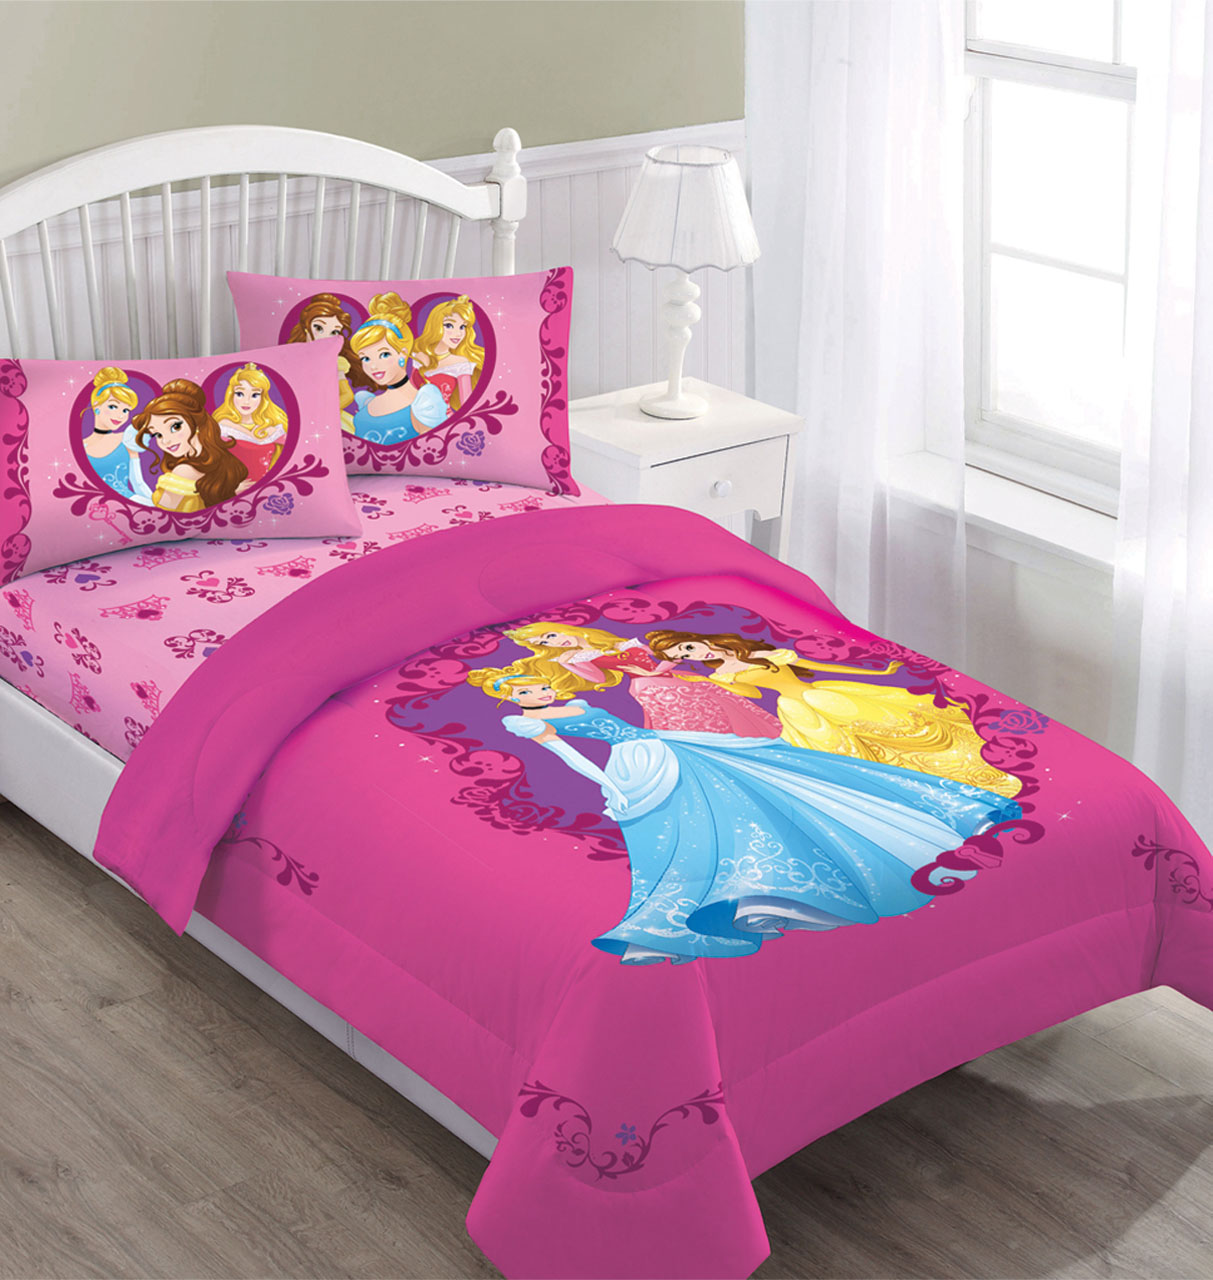 Disney Princess Gateway to Dreams Twin Bedding Comforter Set